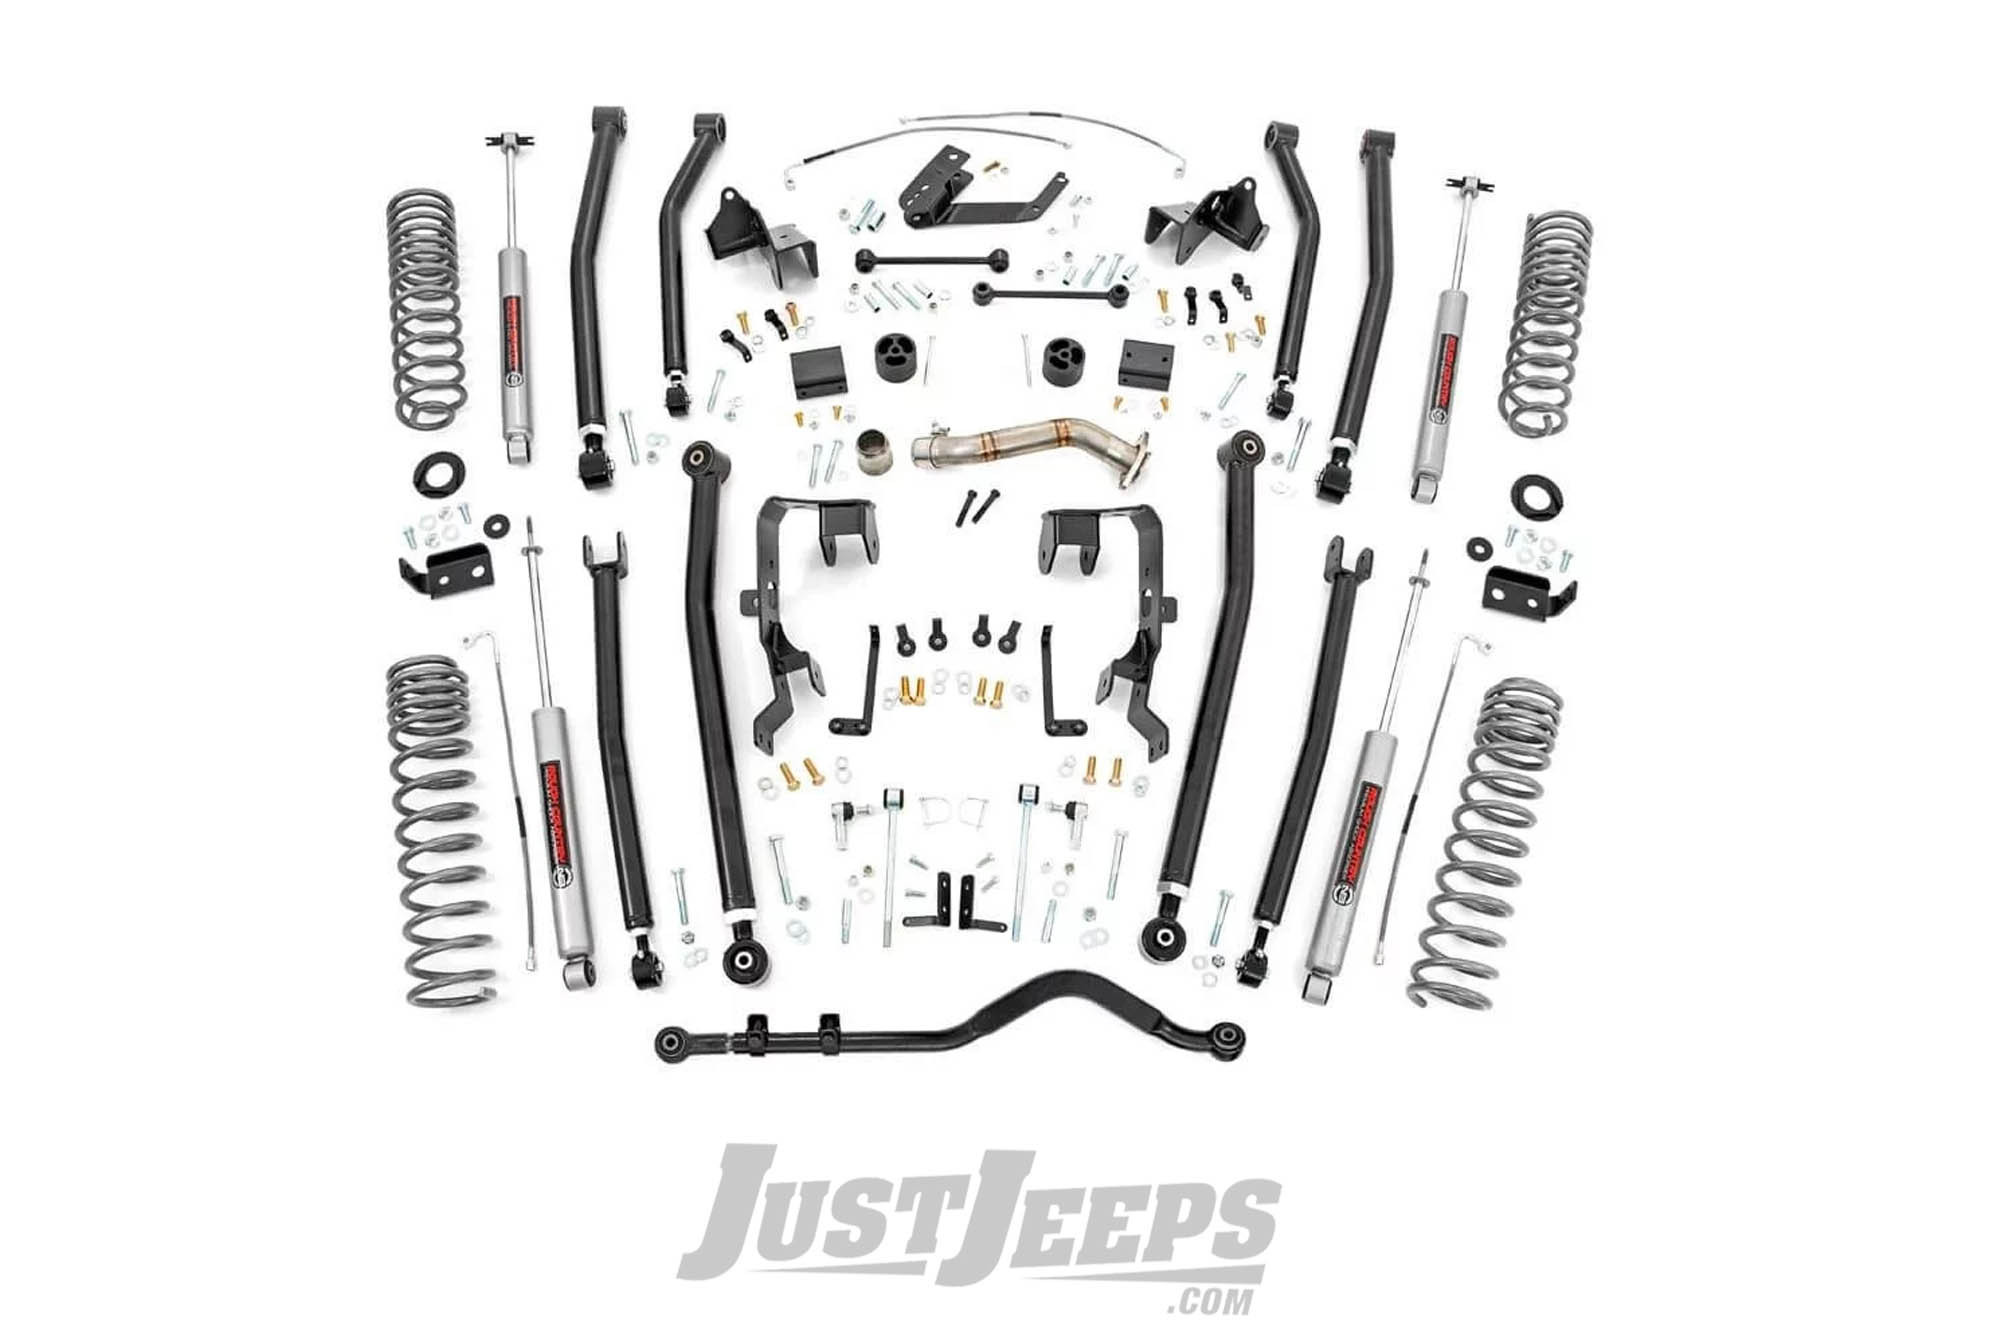 Just Jeeps Rough Country 4 Long Arm Suspension Lift Kit